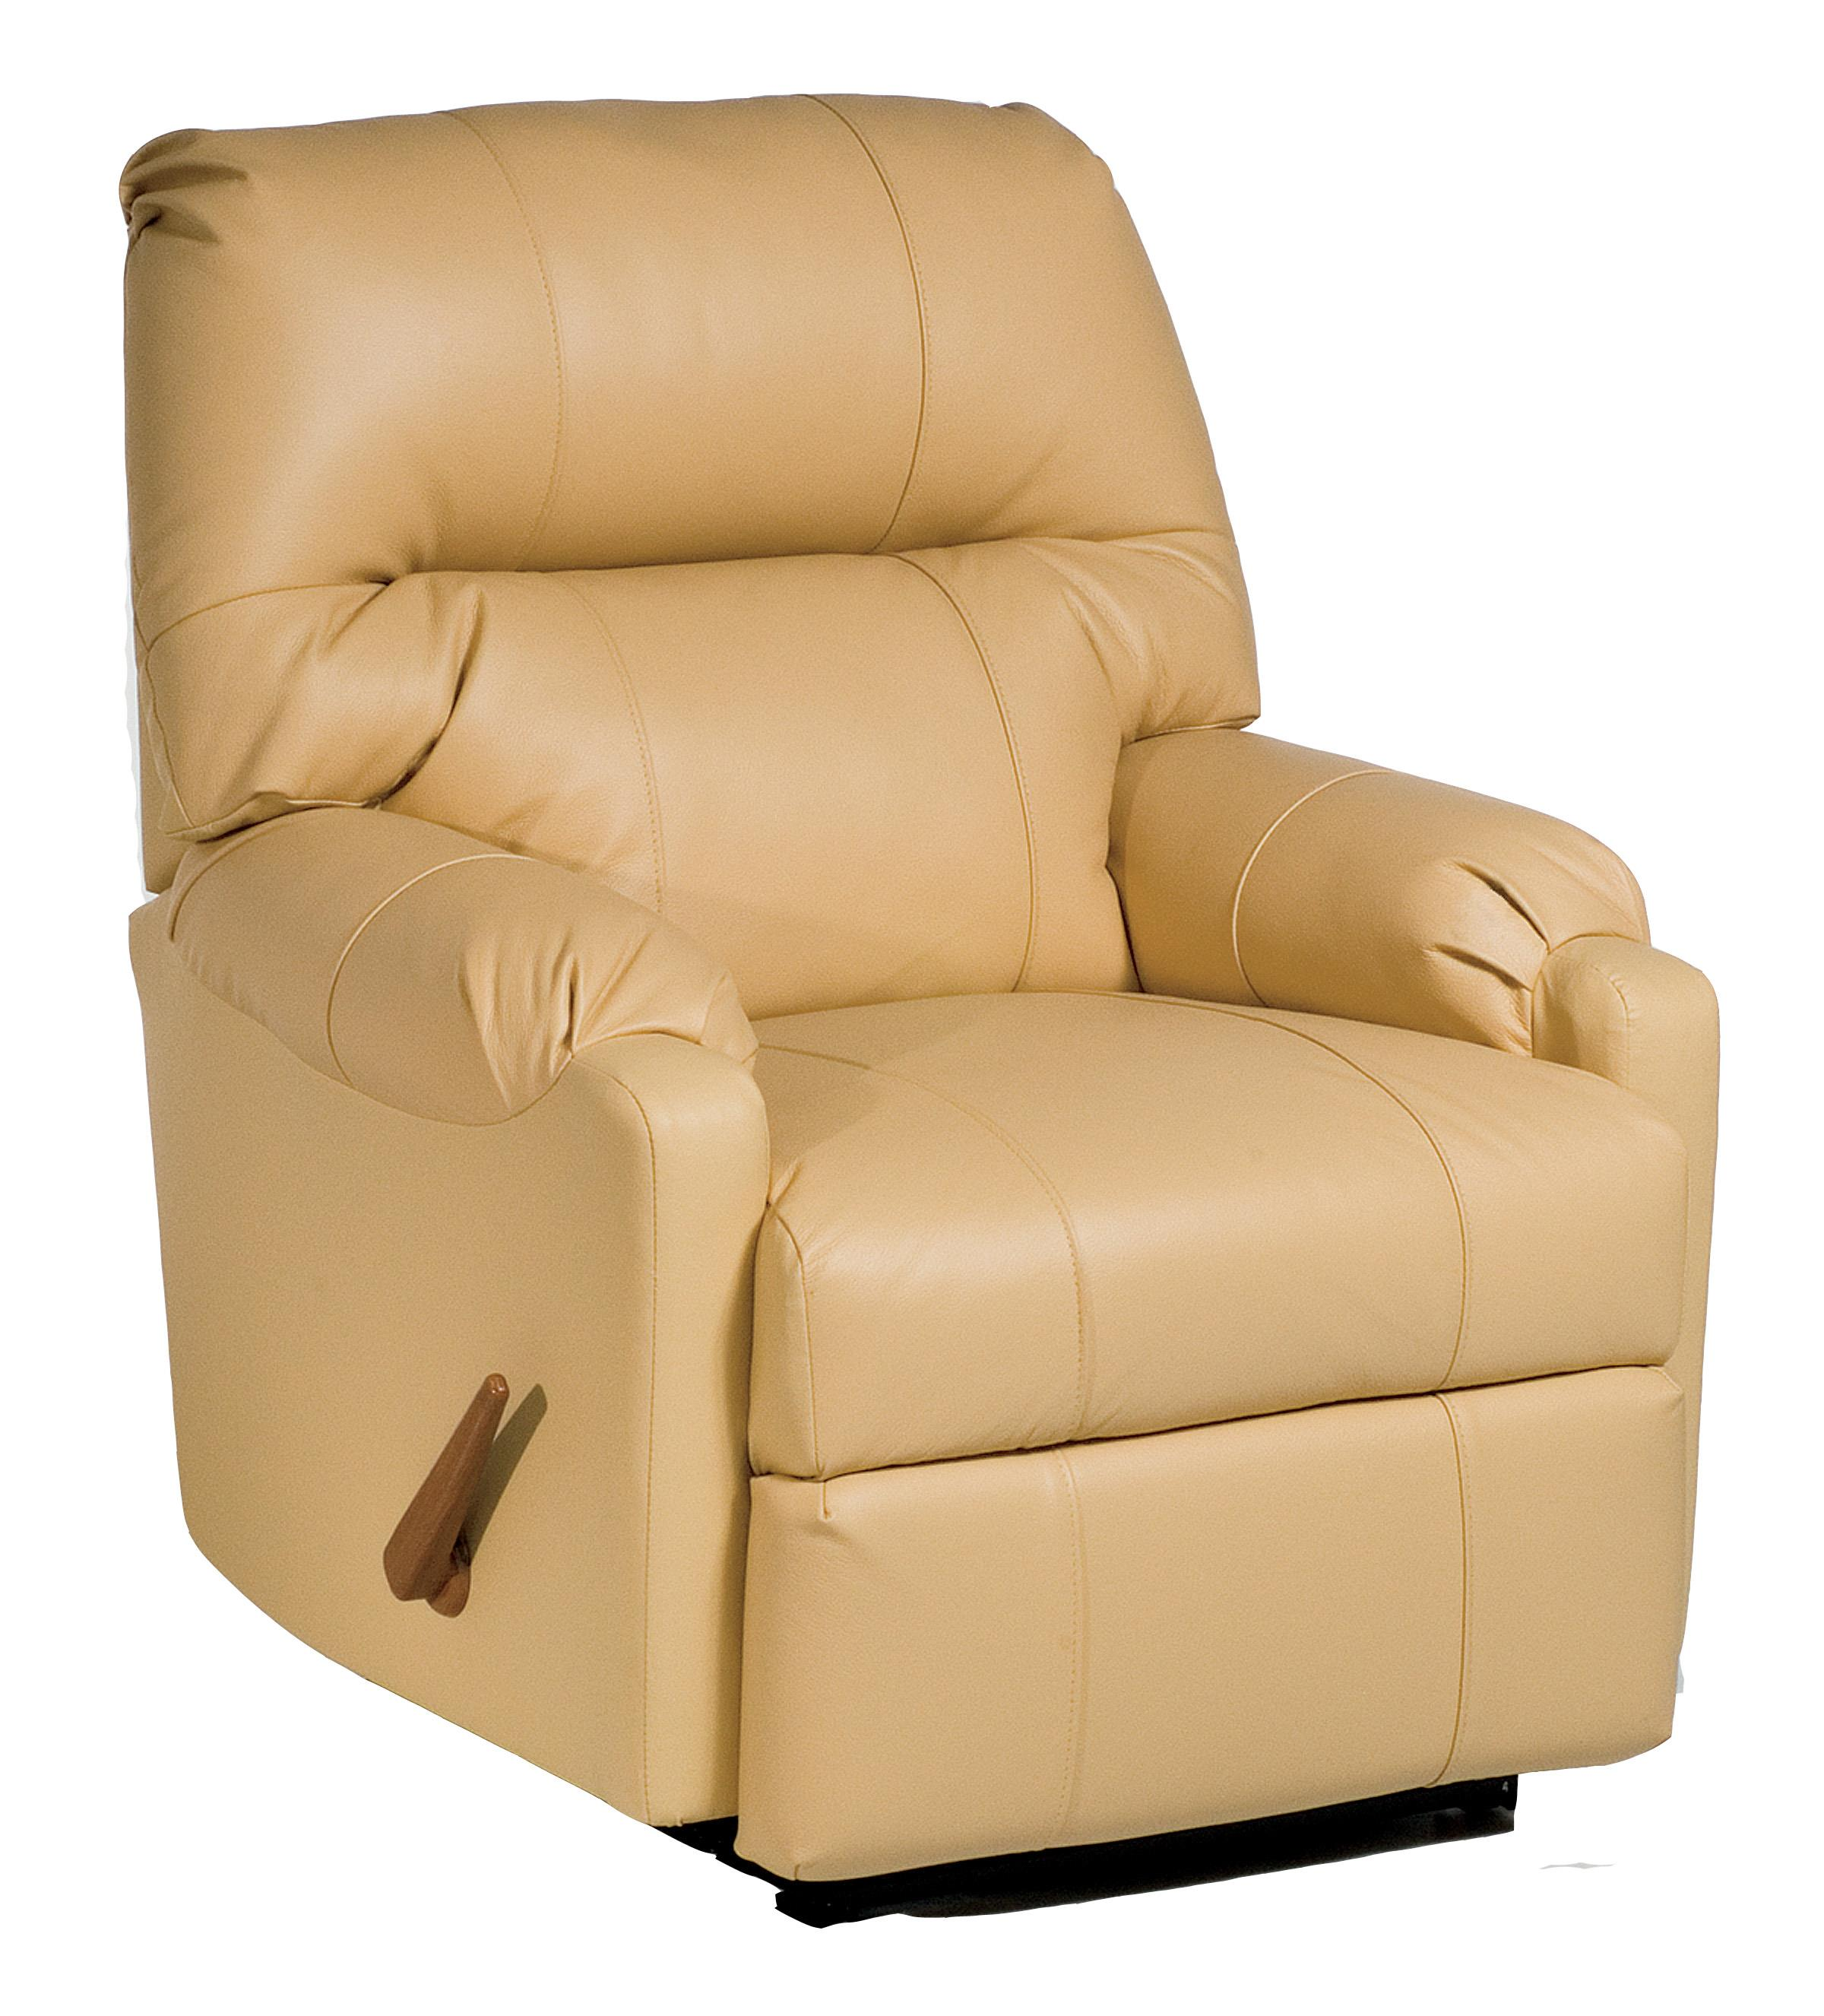 com kayla recliner resolution petite recliners via flexsteel high a product image download share email